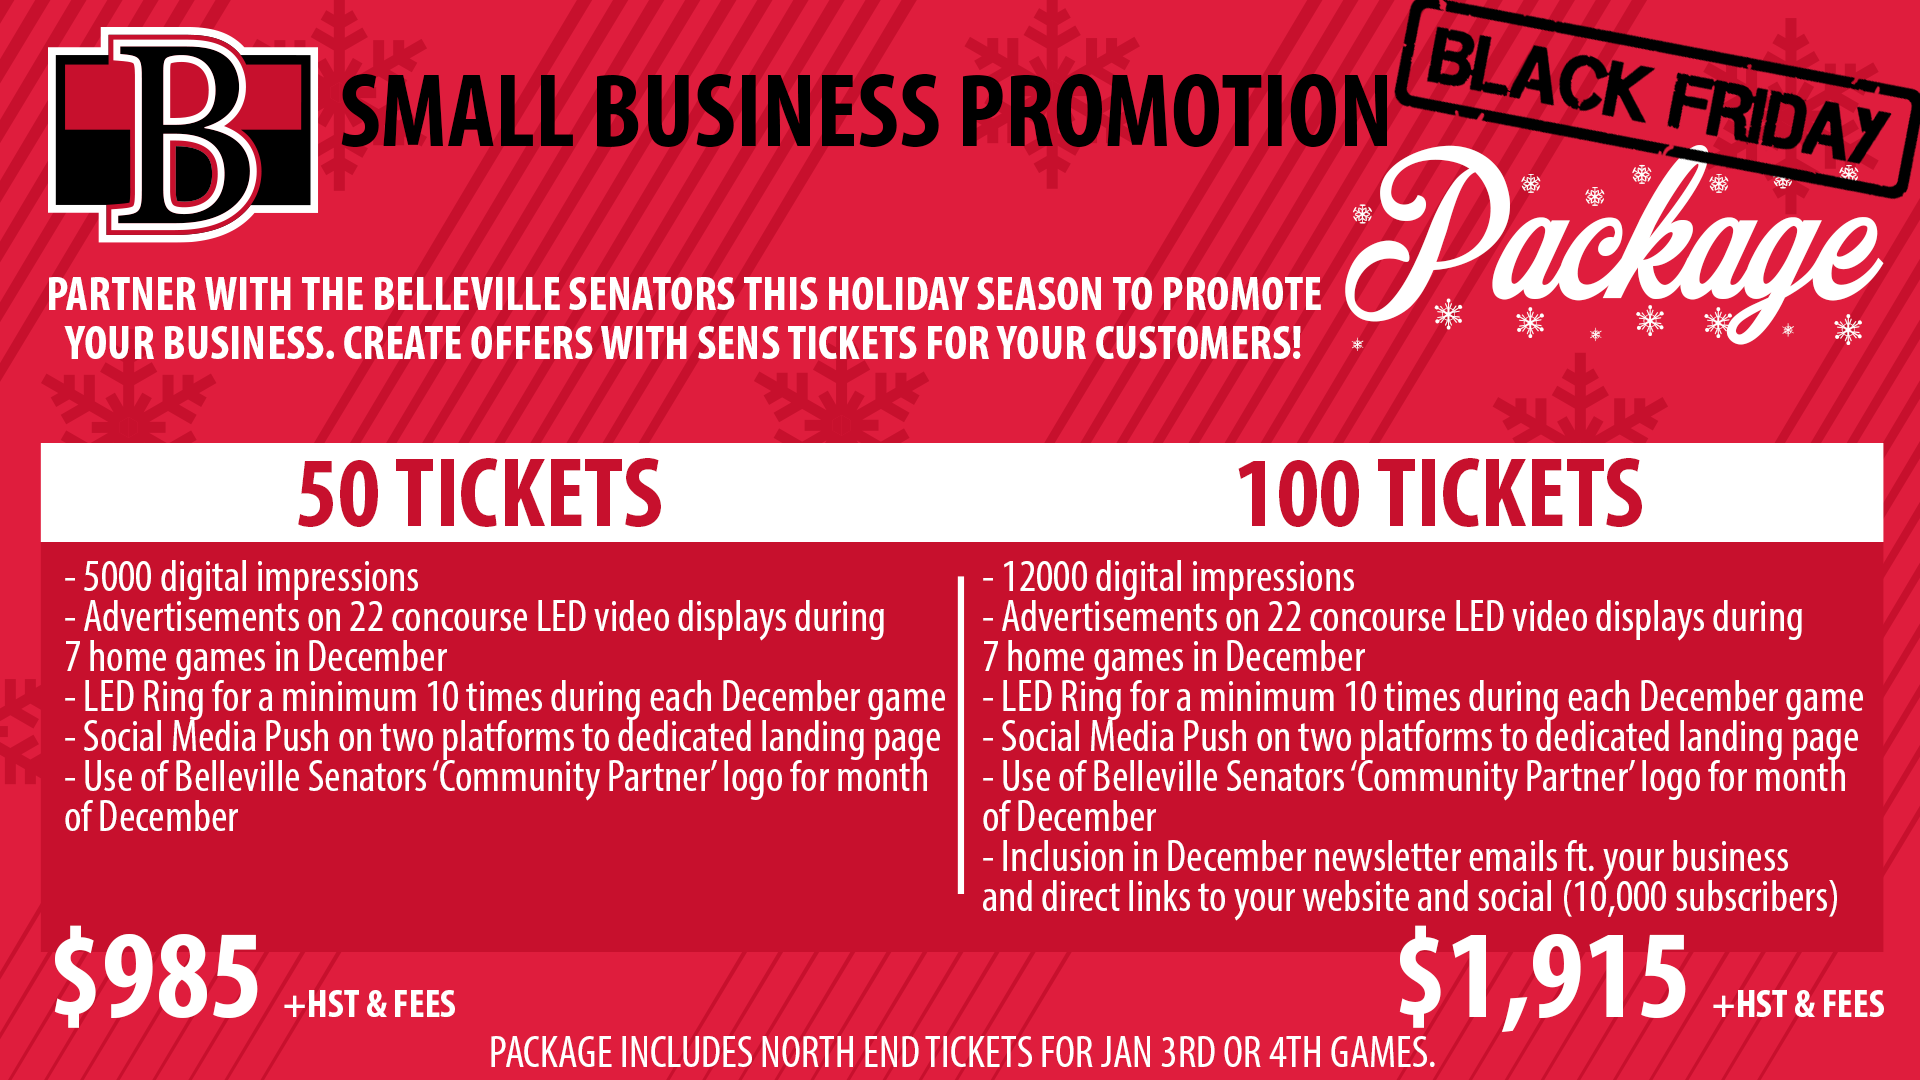 Business Package Holiday Black Friday